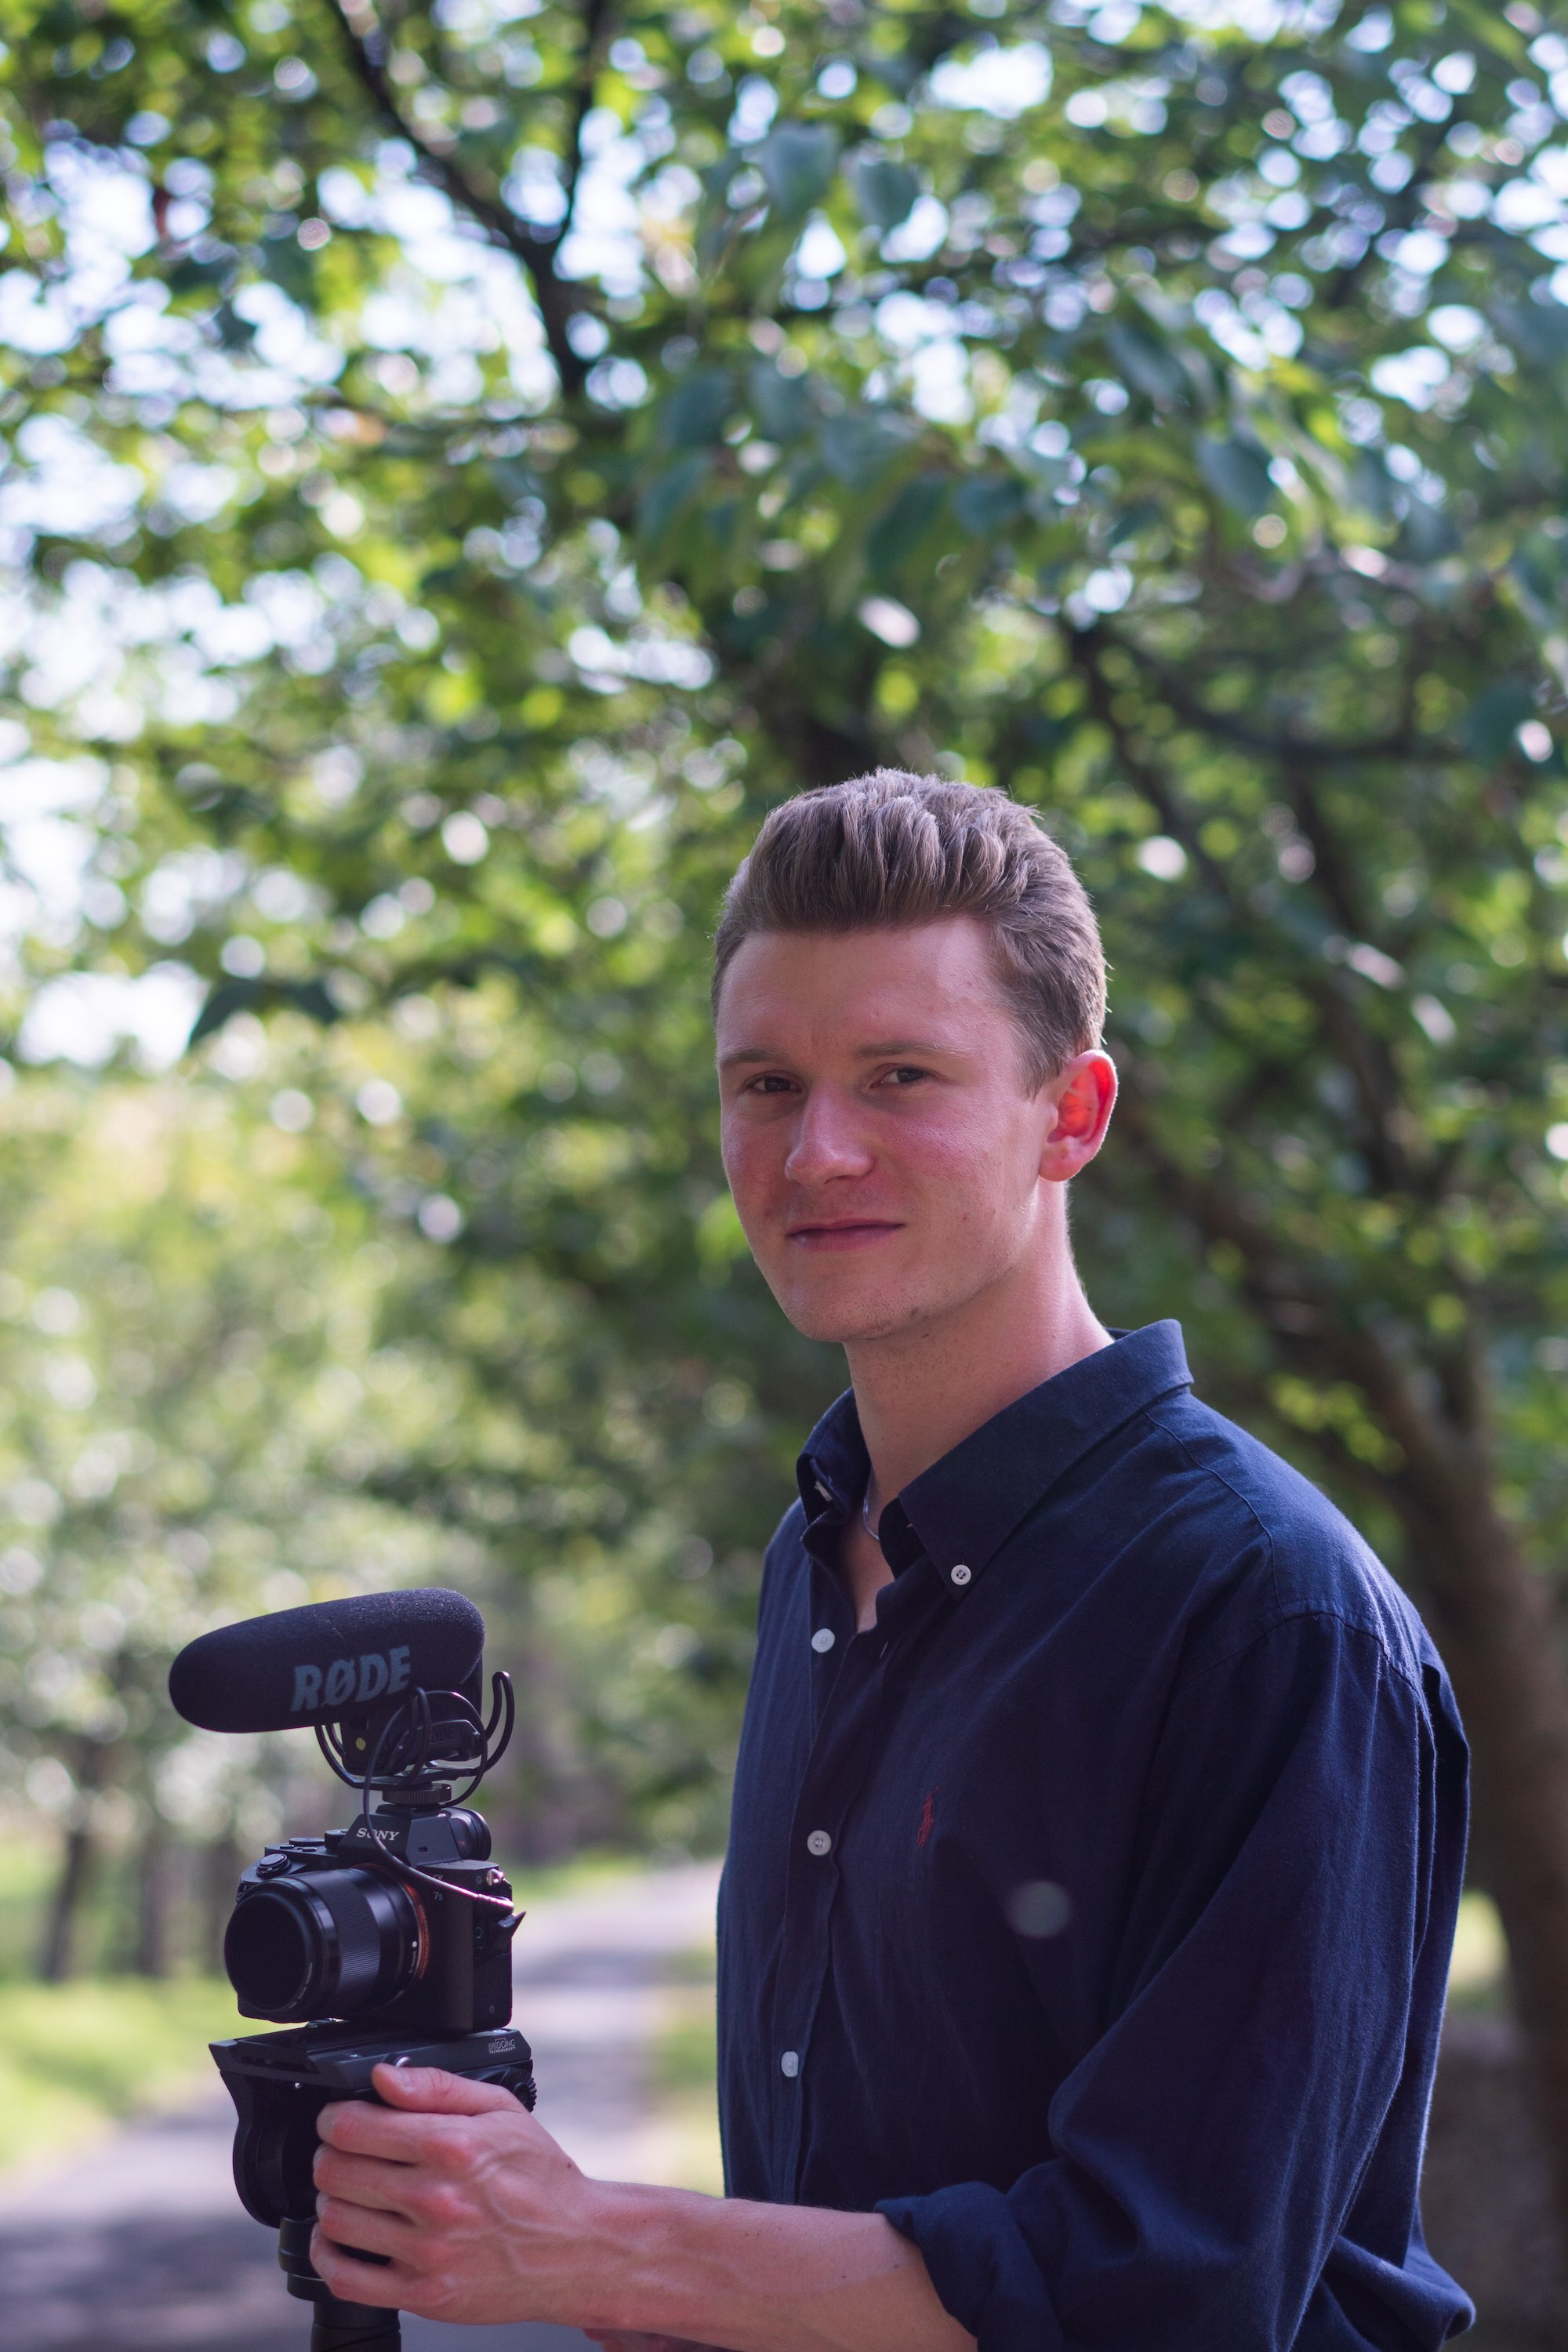 George Collings - Videographer